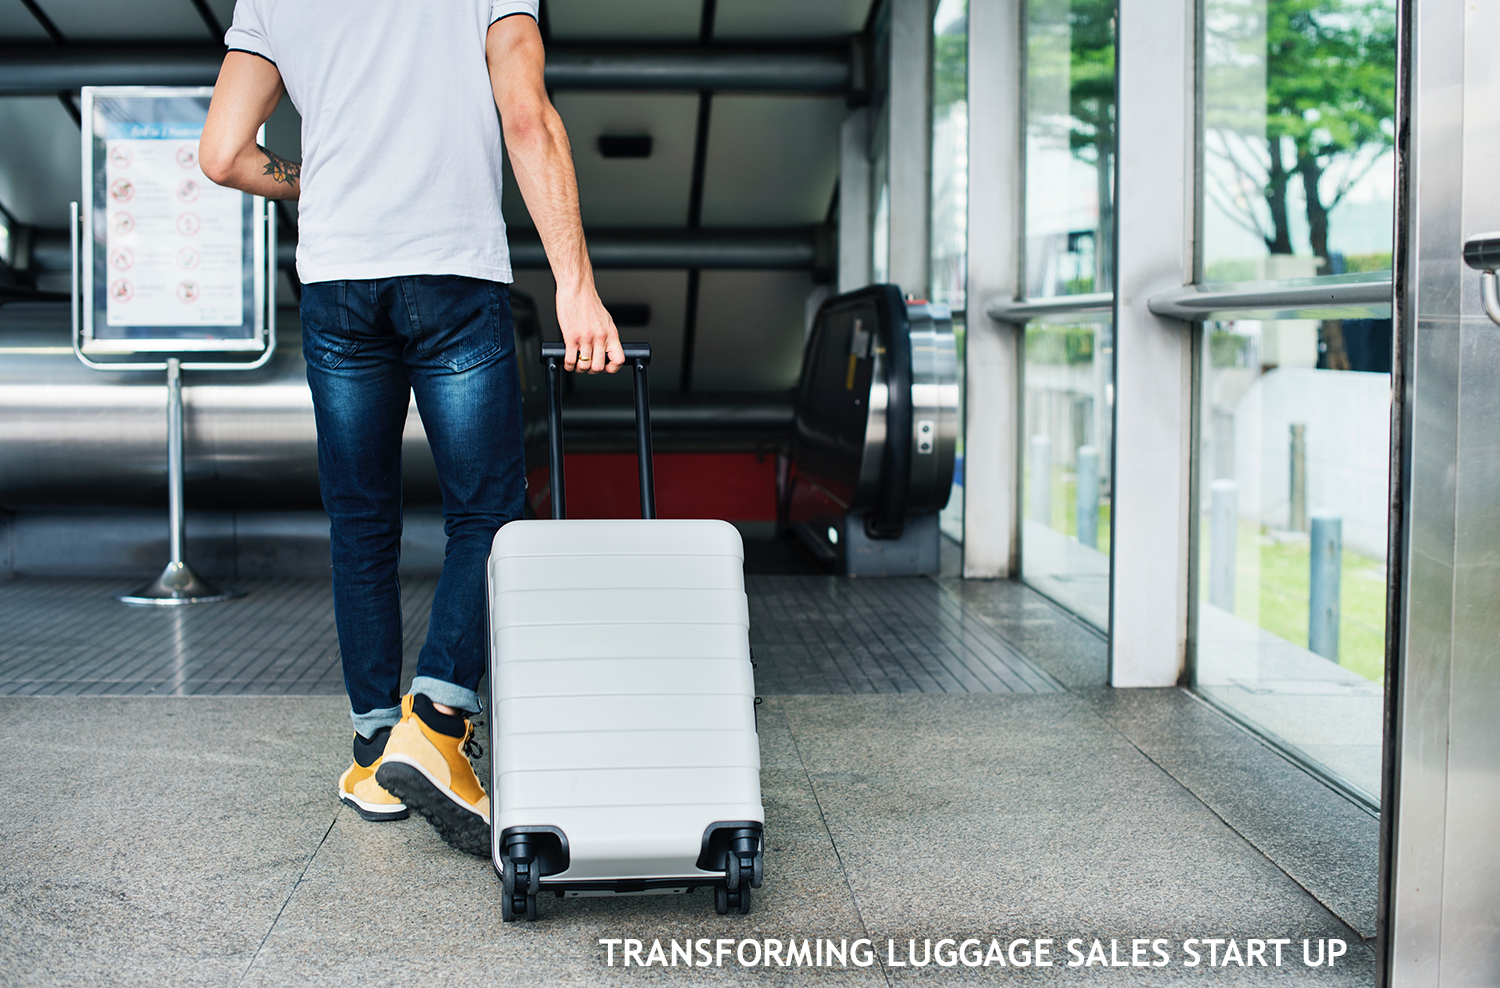 transforming luggage sales start up